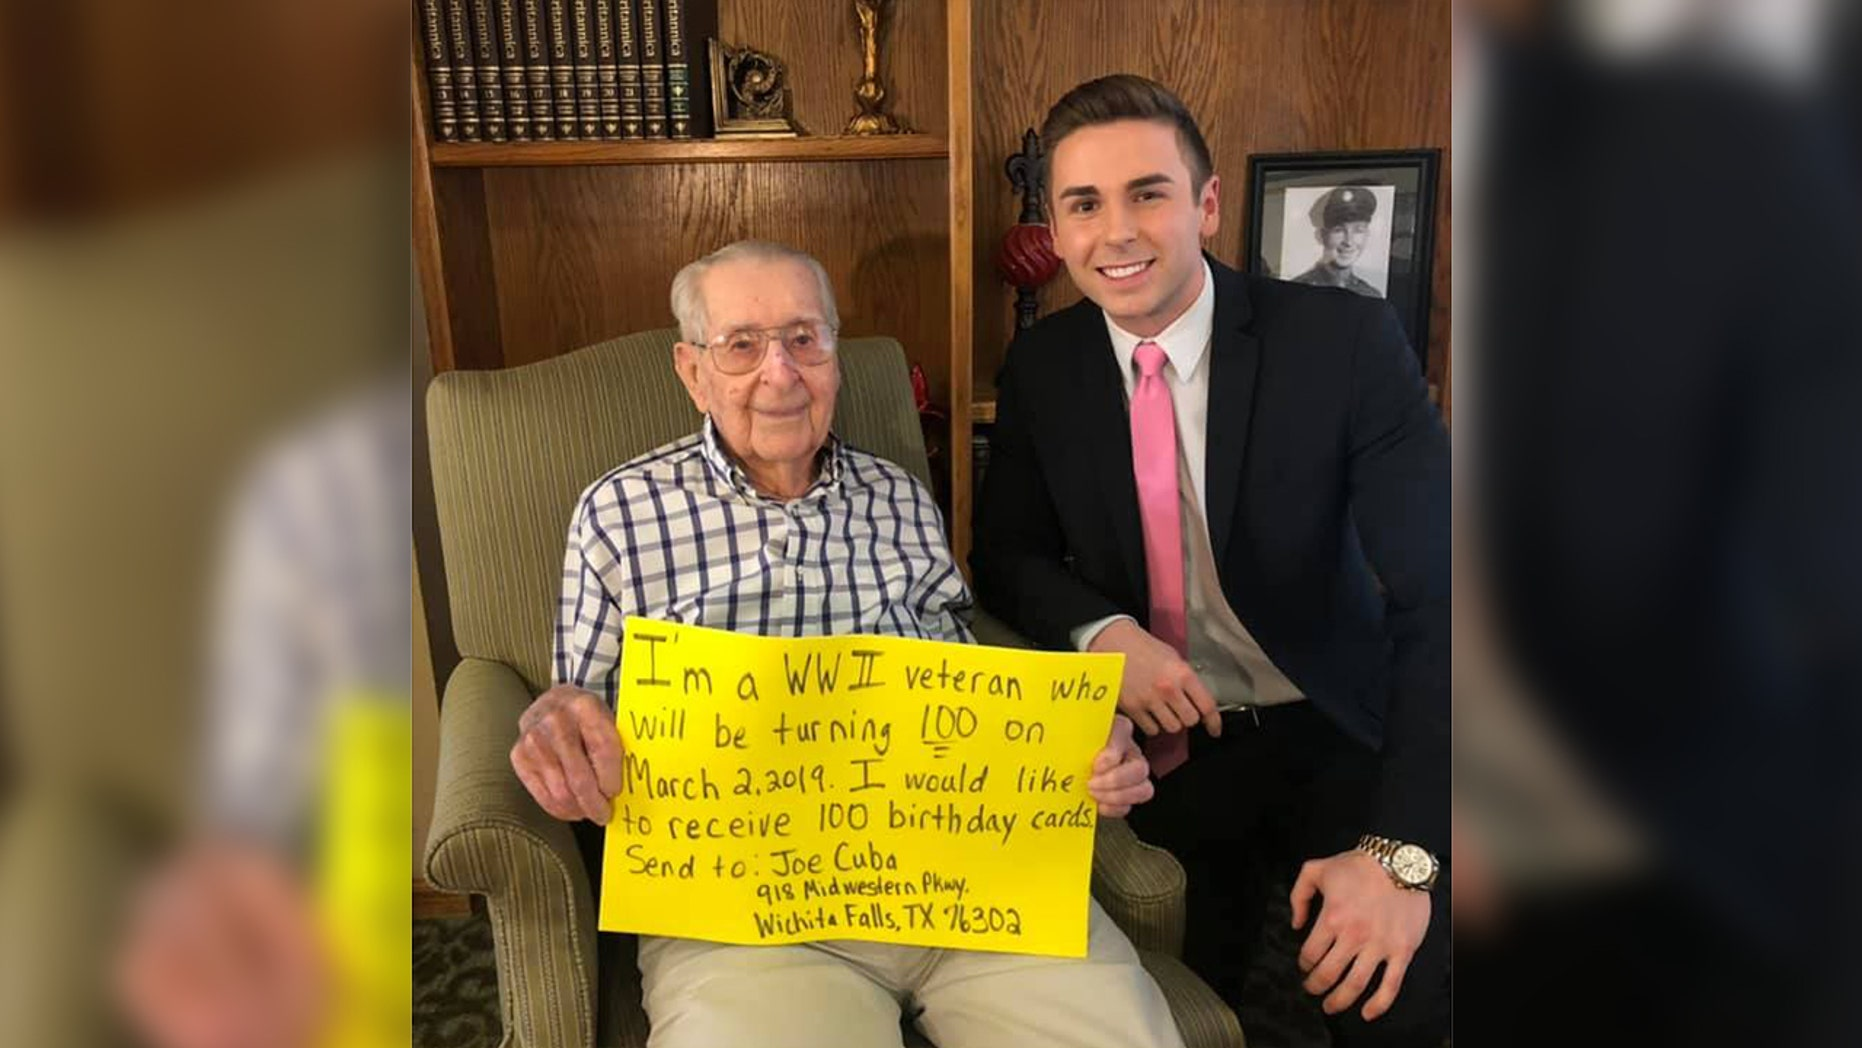 WWII Veteran Has One Wish For His Birthday 100 Cards